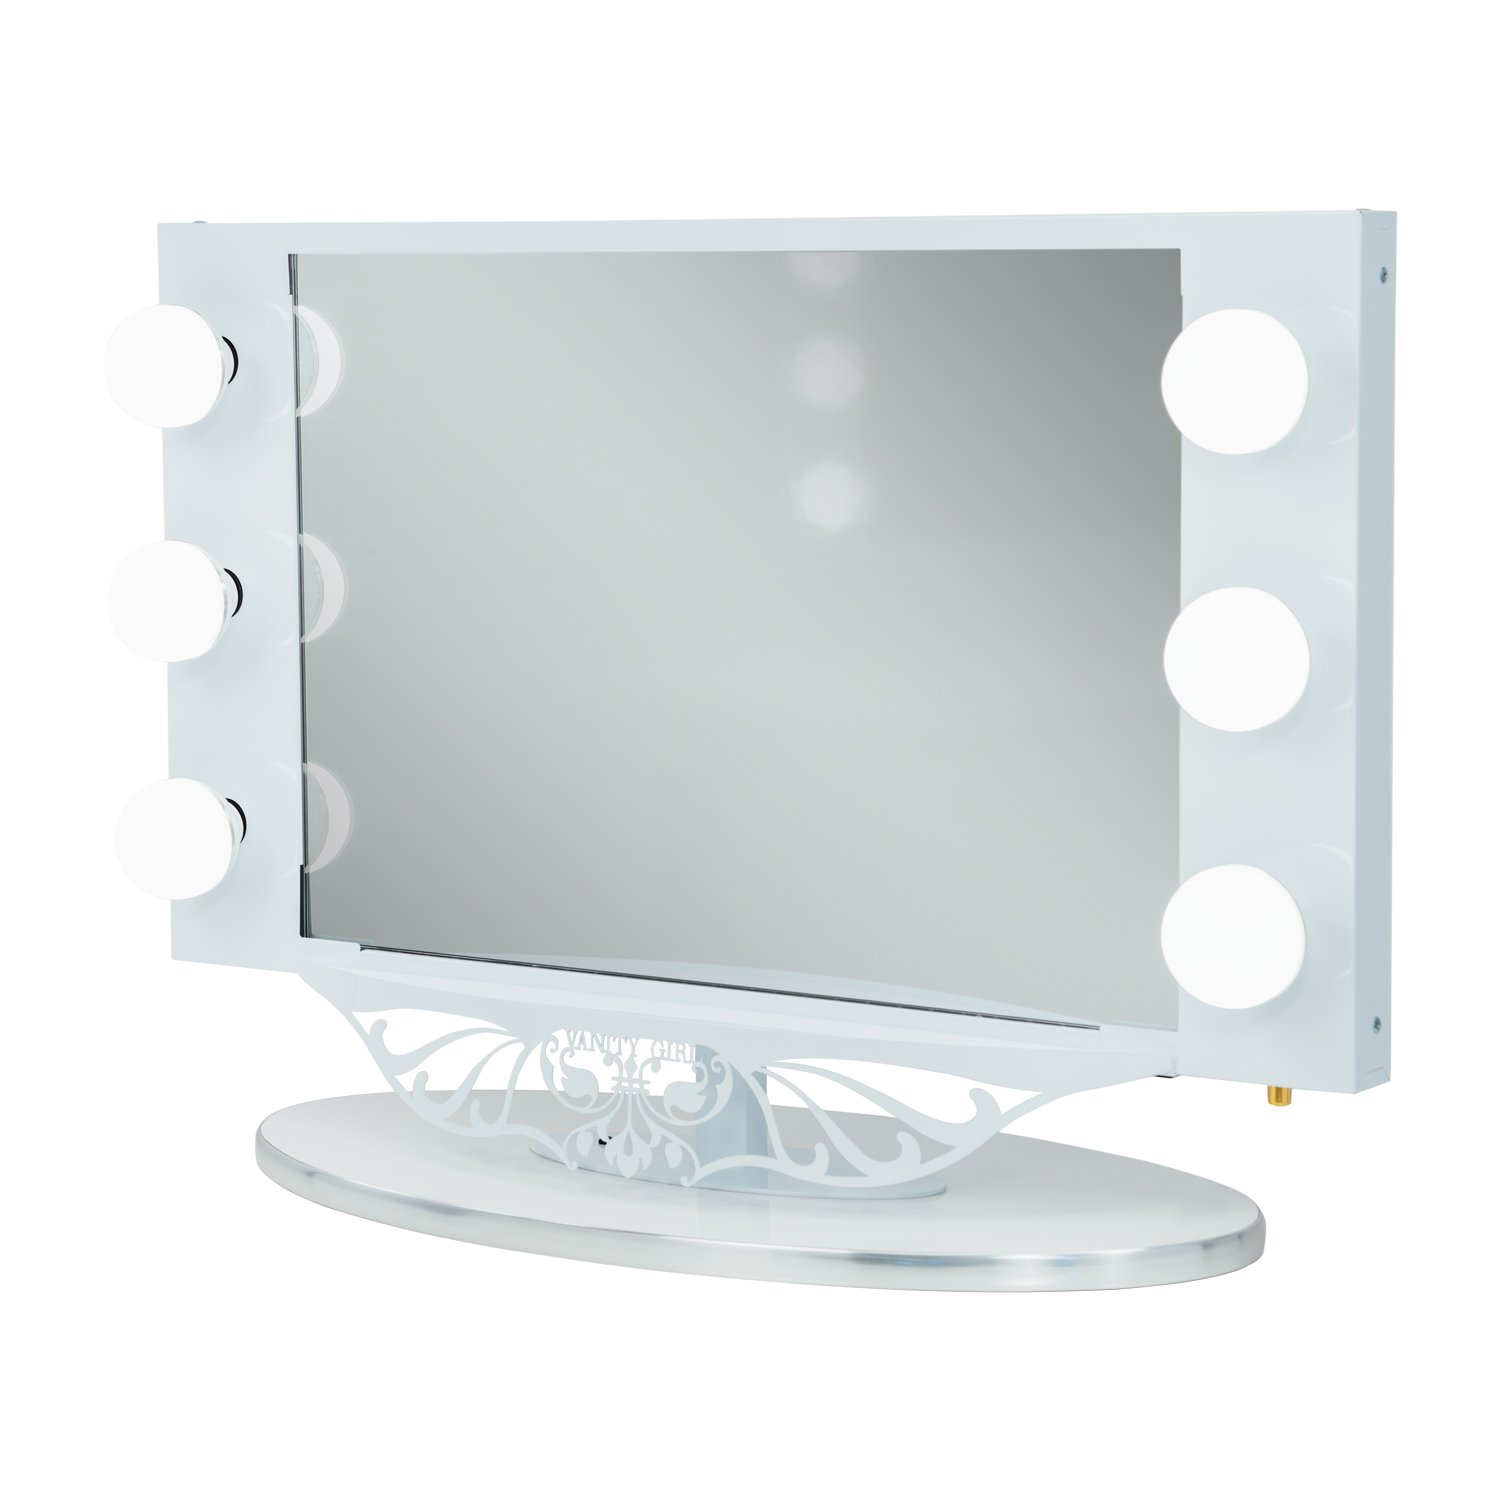 White Vanity Girl Starlet Lighted Vanity Mirror with Optic Glass and 6 Cosmetic Light Bulbs Around Frame